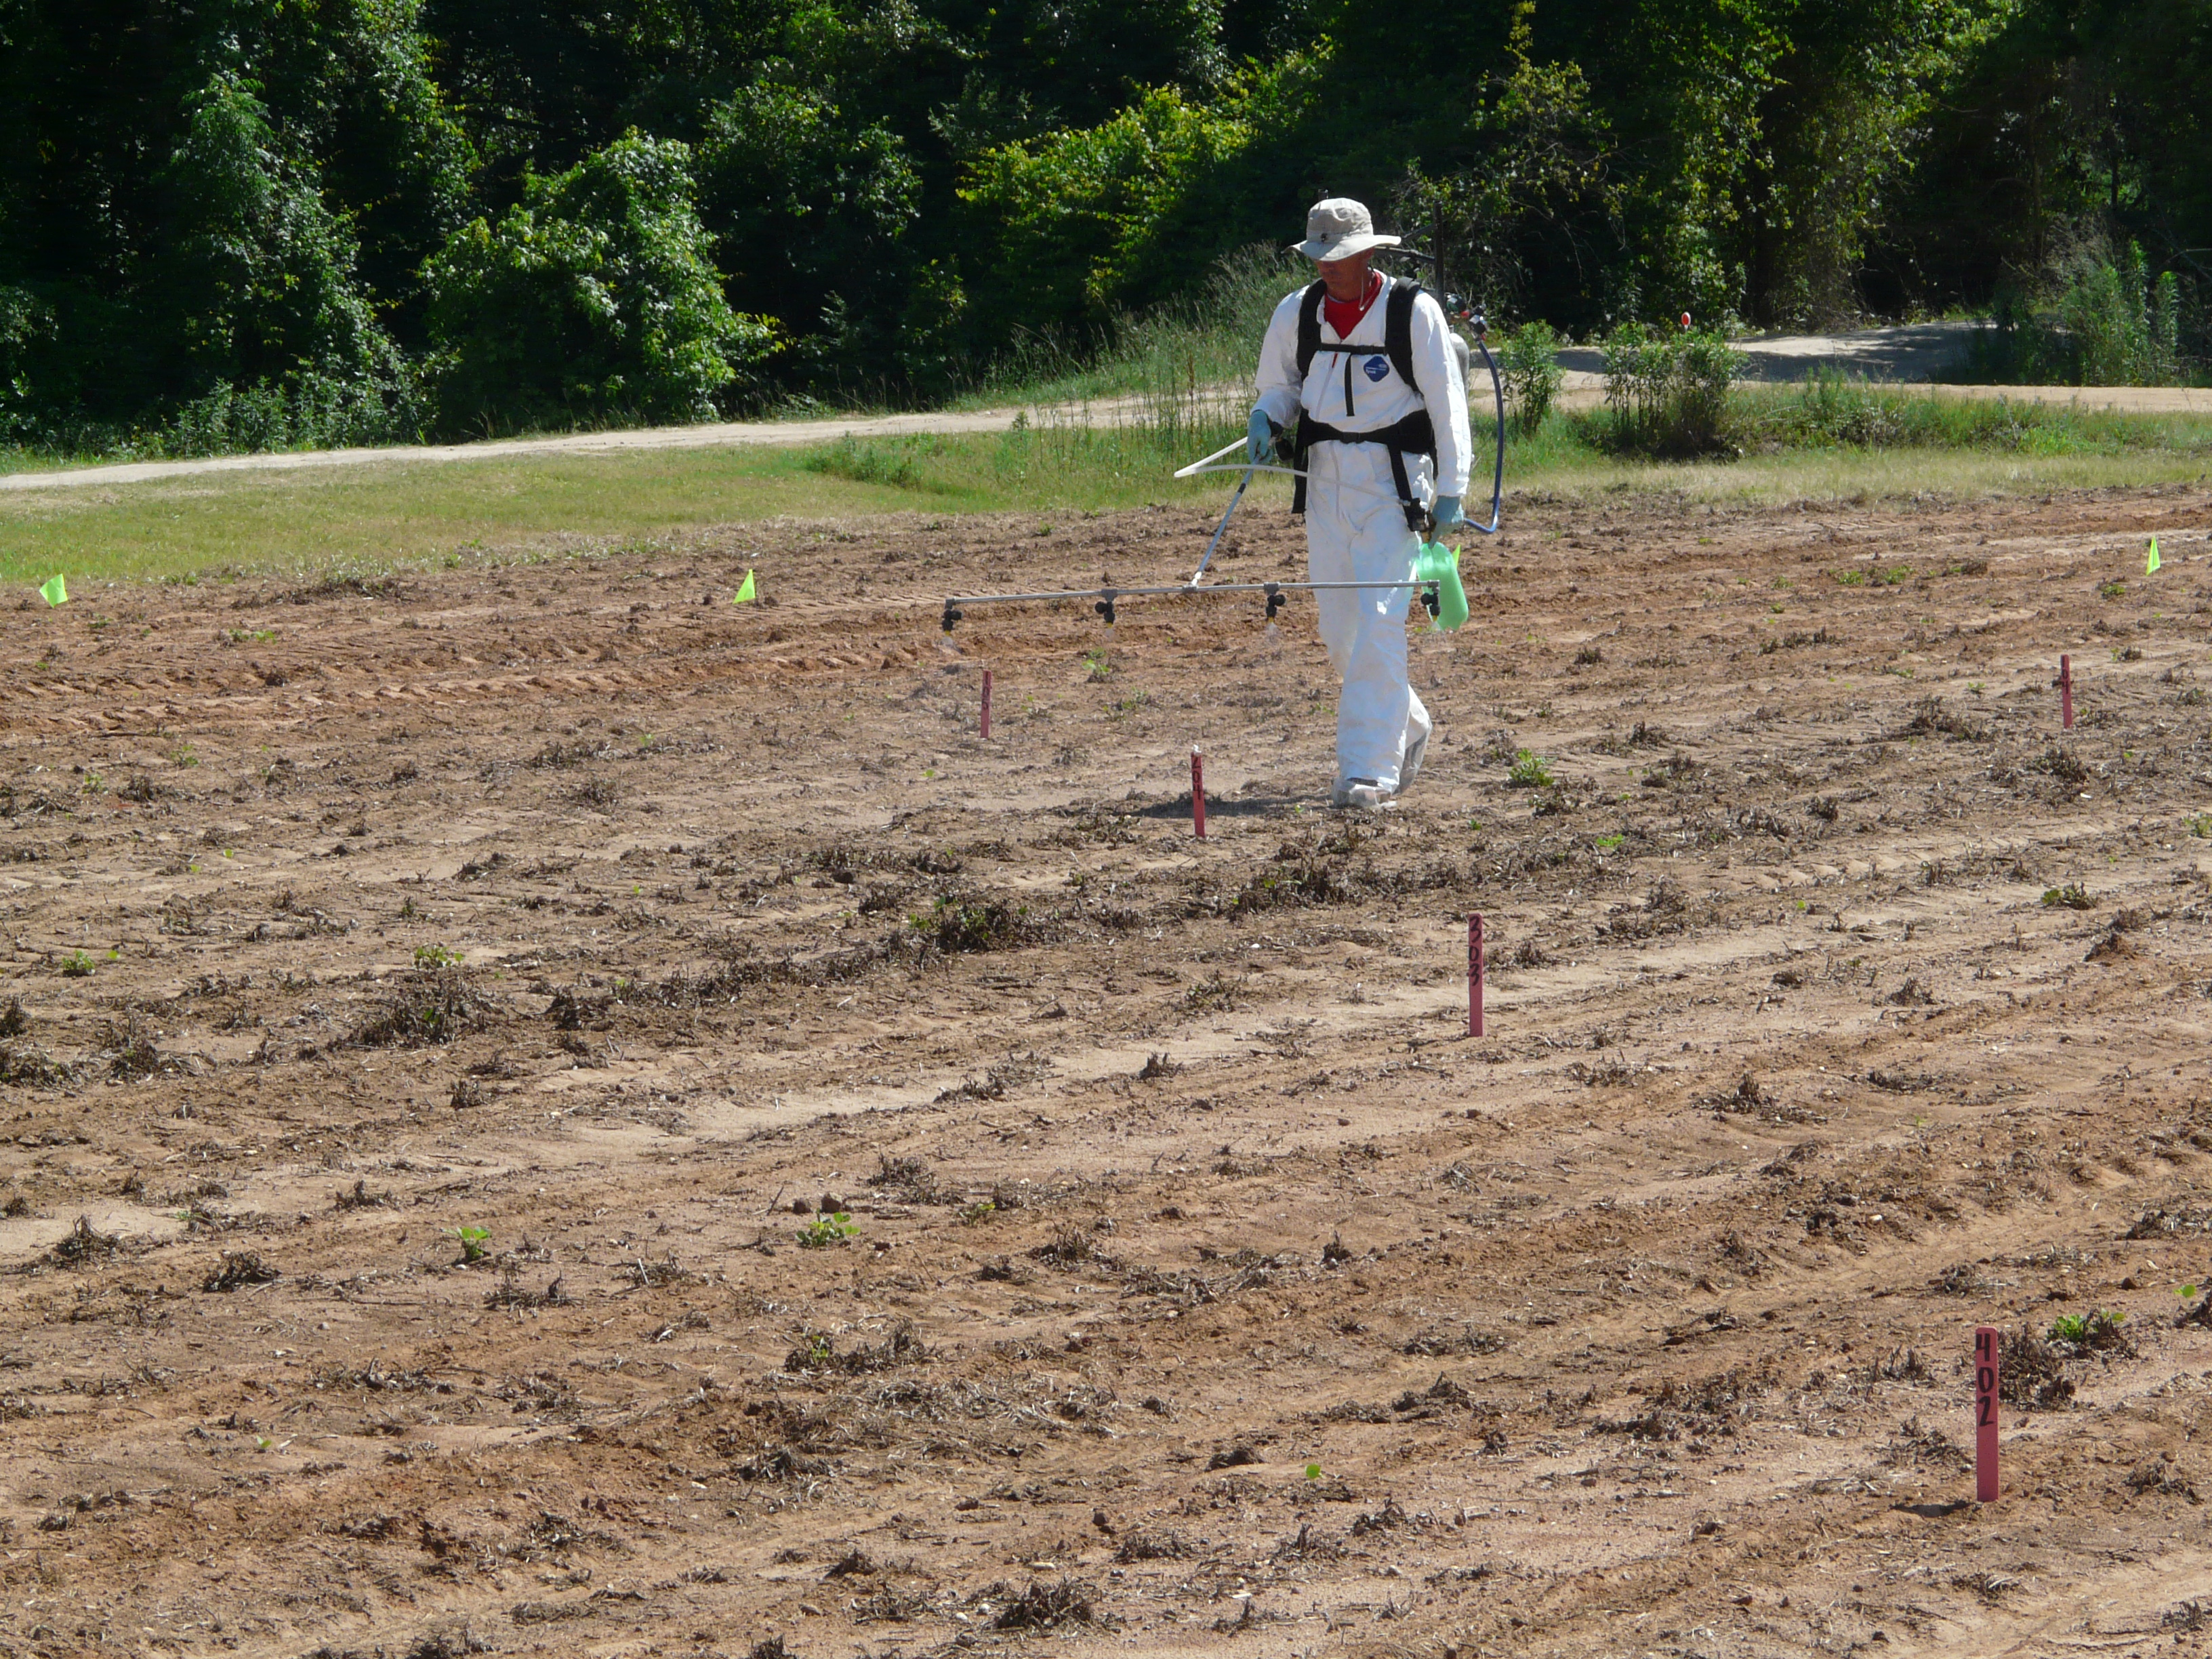 cotton response to preemergent herbicides in a sandy soil environment - Preemergent Herbicide